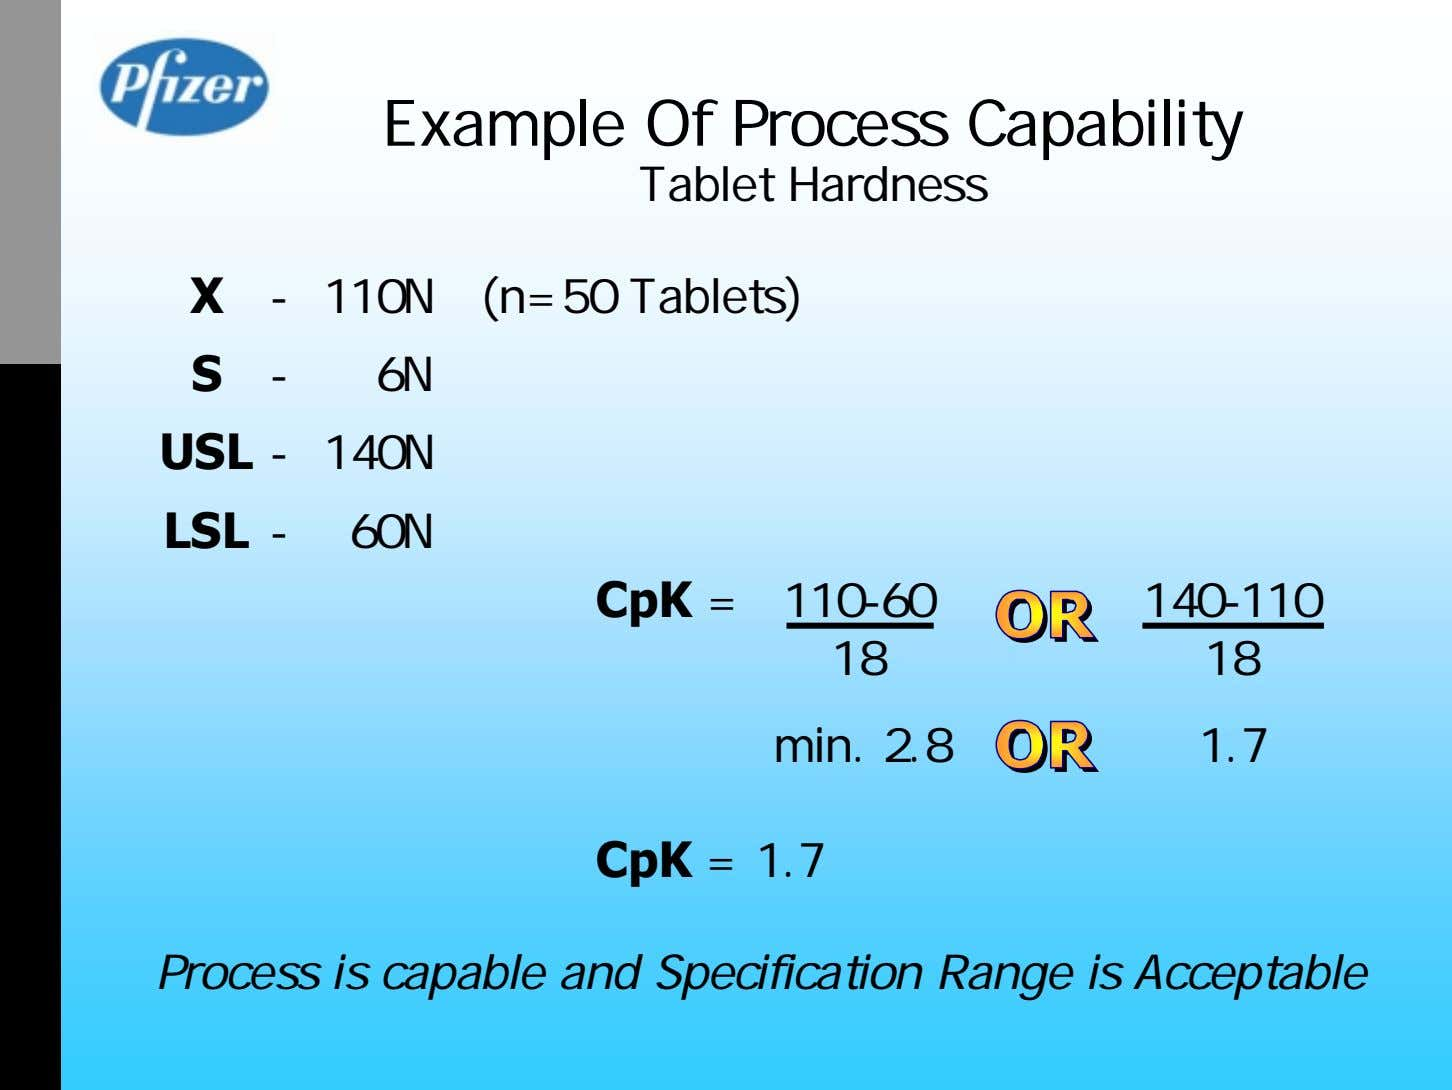 Example Of Process Capability Tablet Hardness X - 110N (n=50 Tablets) S - 6N USL